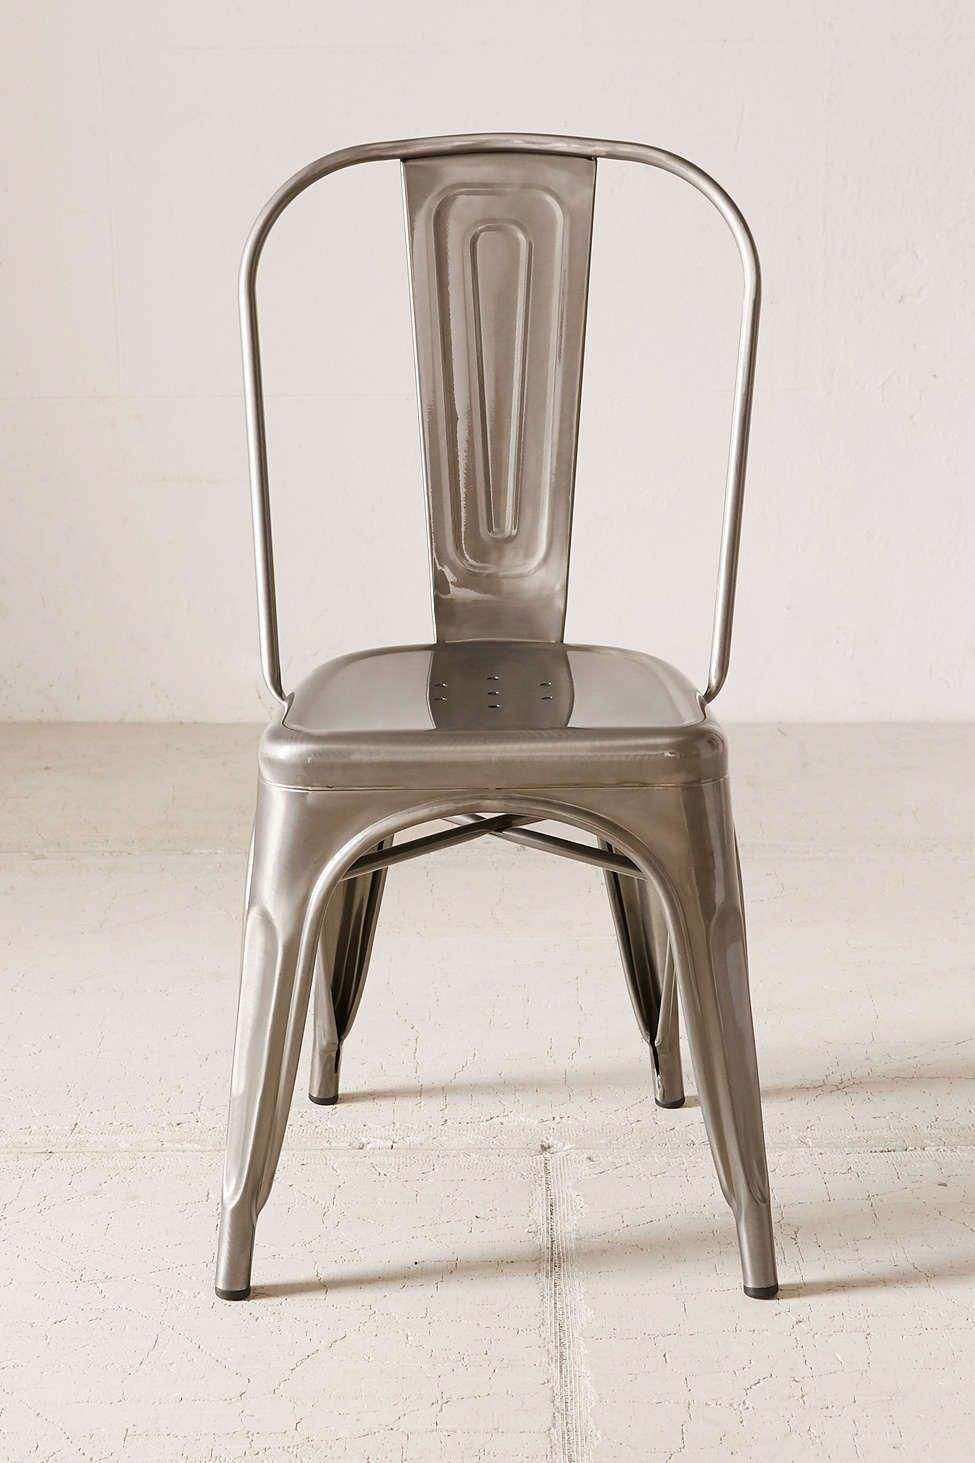 The classic silver/gunmetal dining chair used in industrial decor settings. #MetalChair #IndustrialChair #industrialdecor